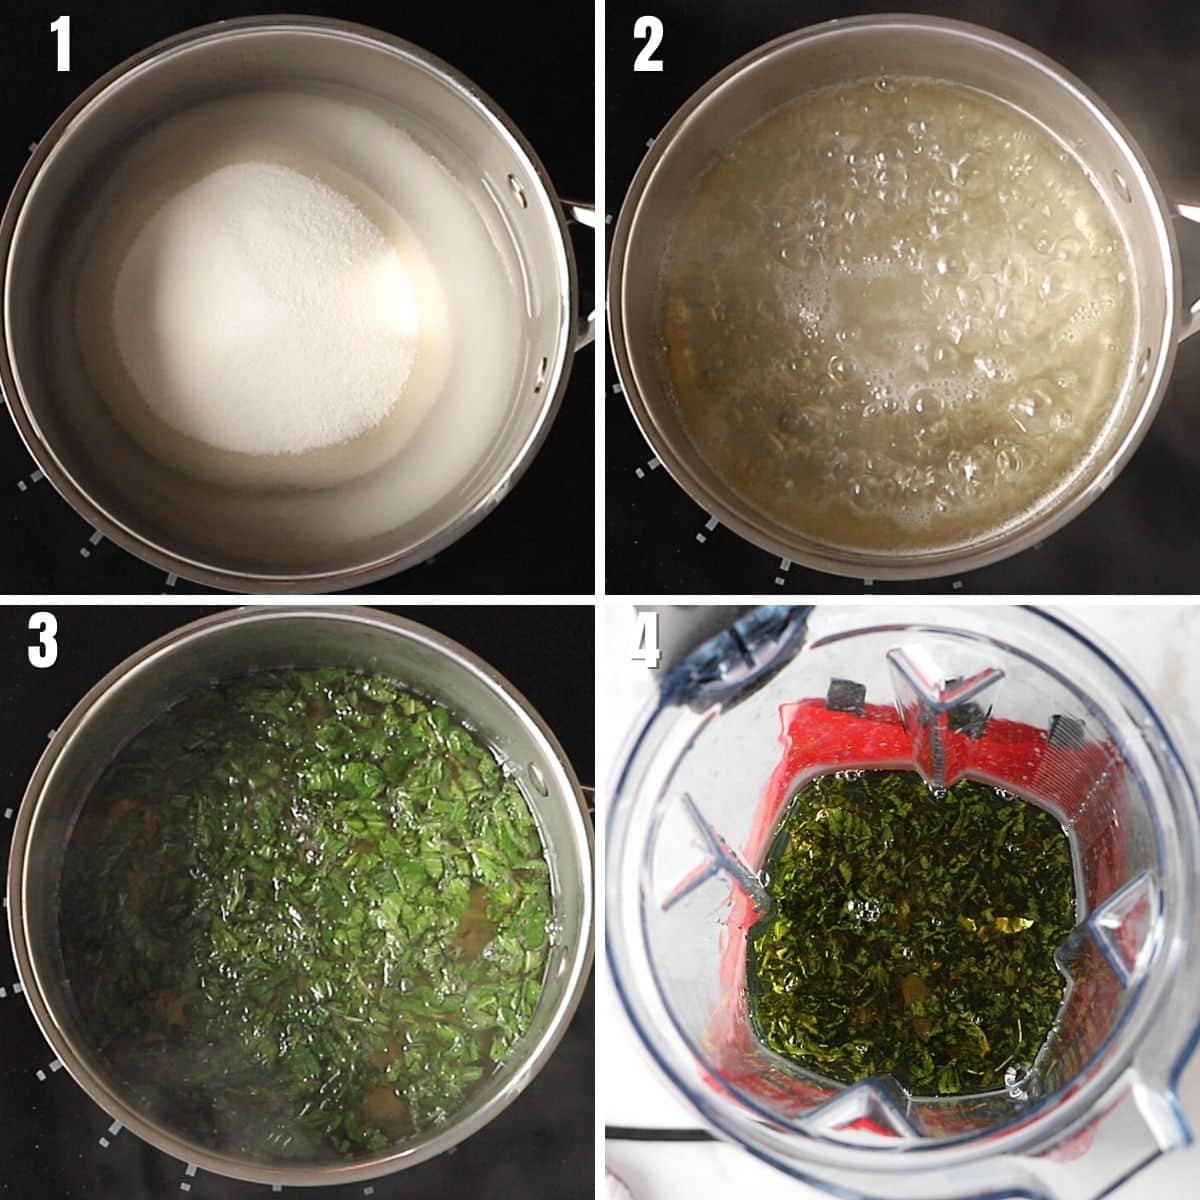 A collage of four images showing how to make mint infused simple syrup/